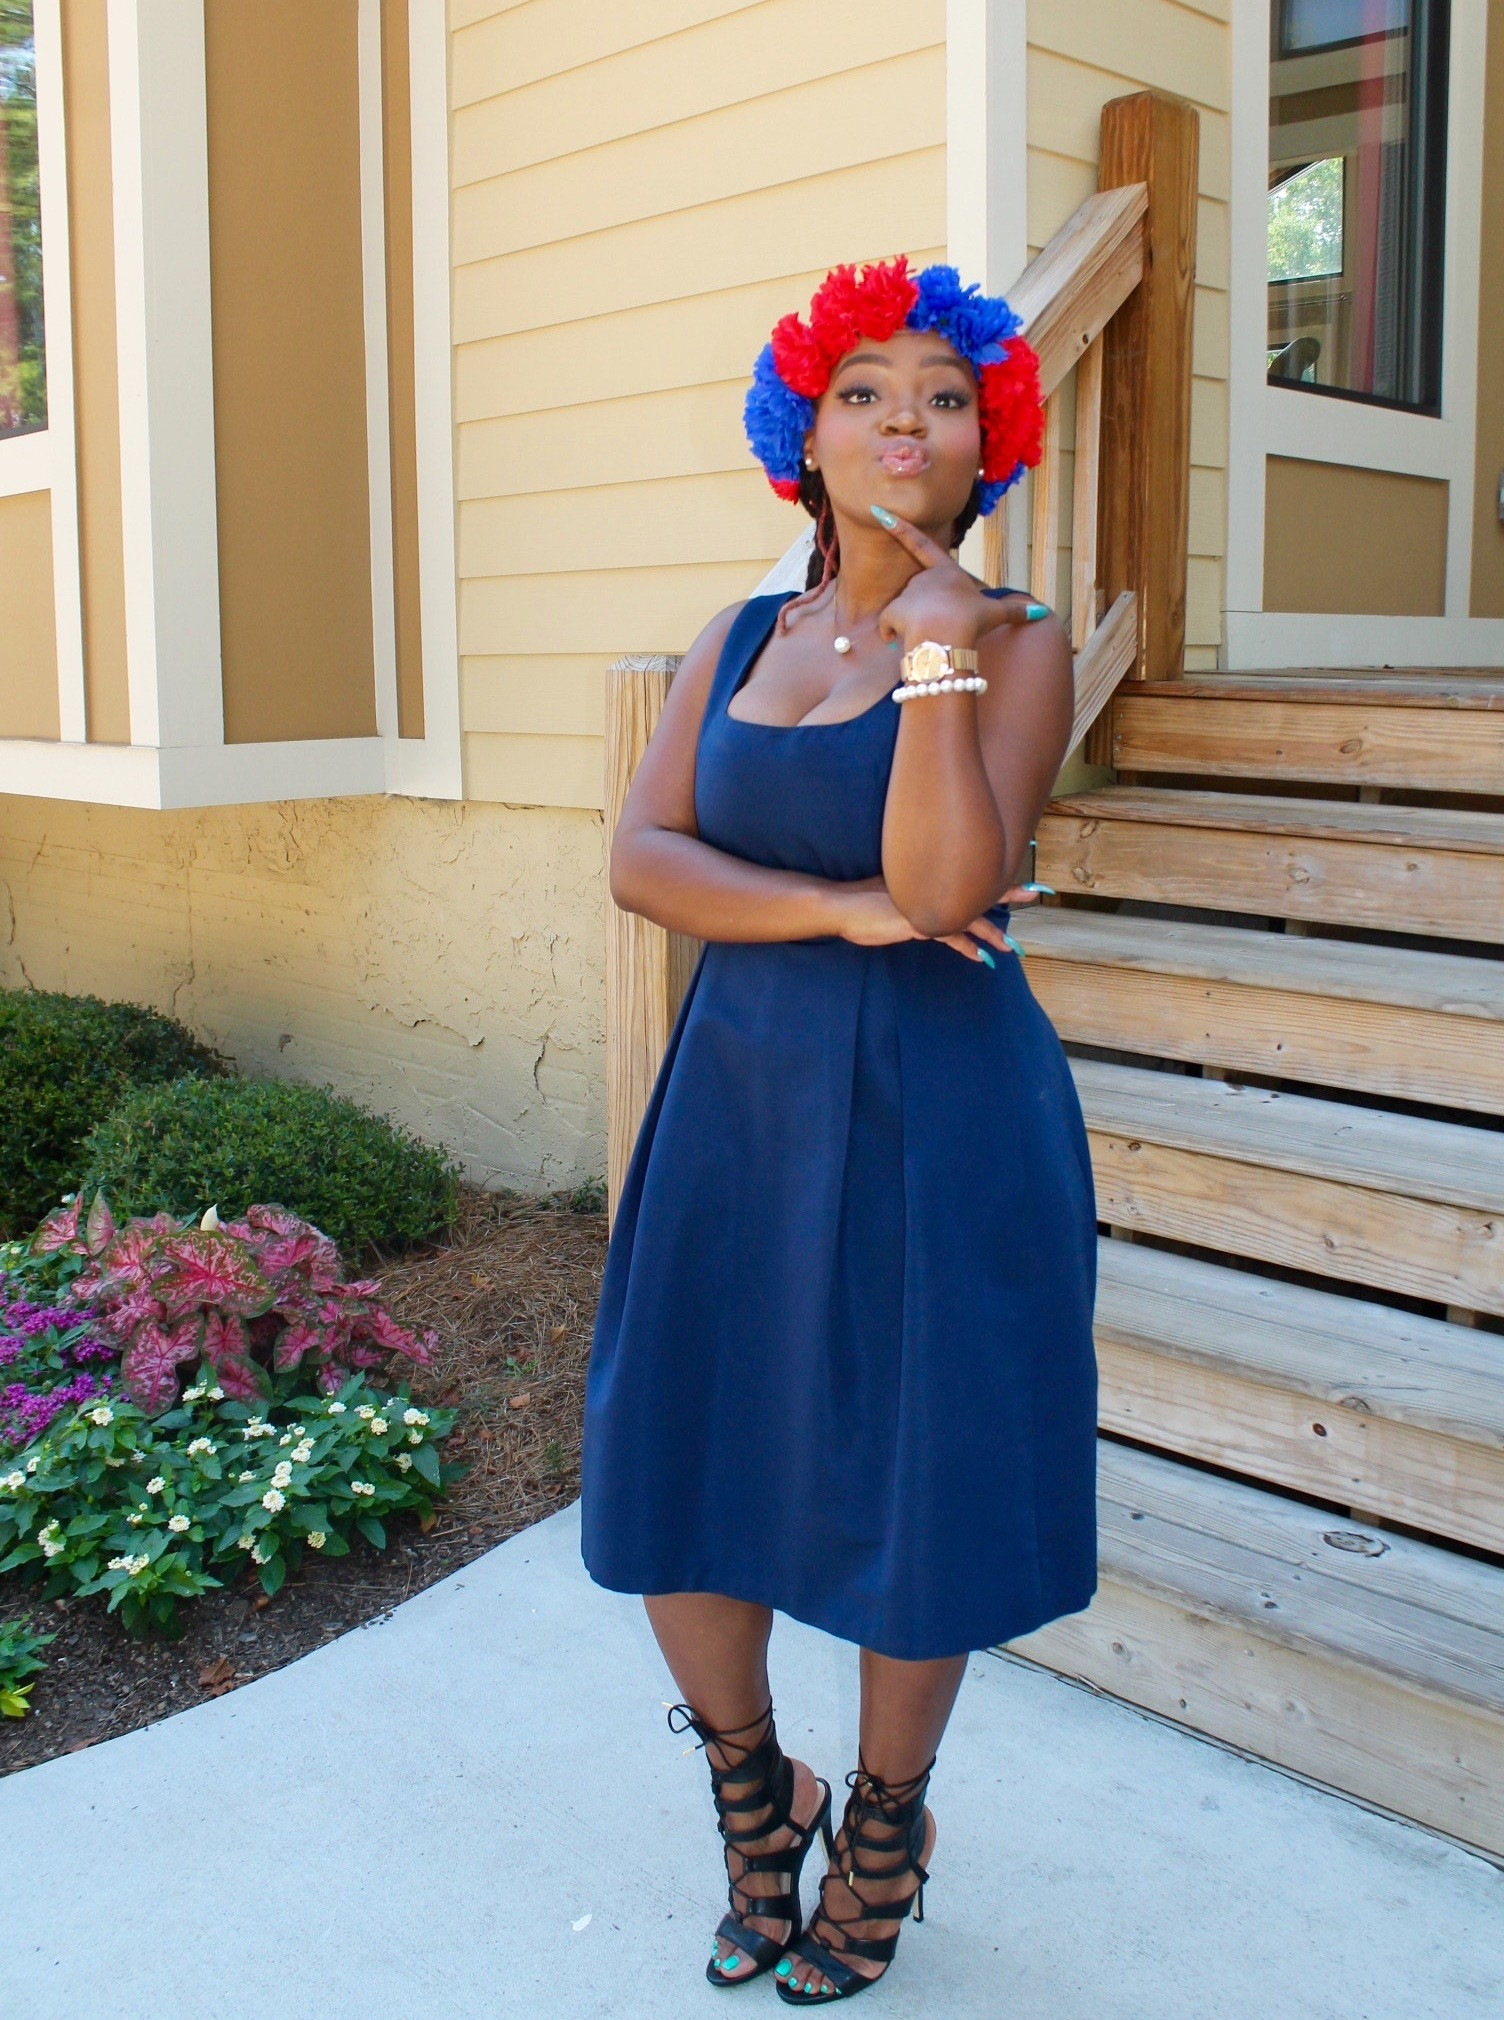 STYLE: 4TH OF JULY SUNDAY BEST FLORAL CROWN